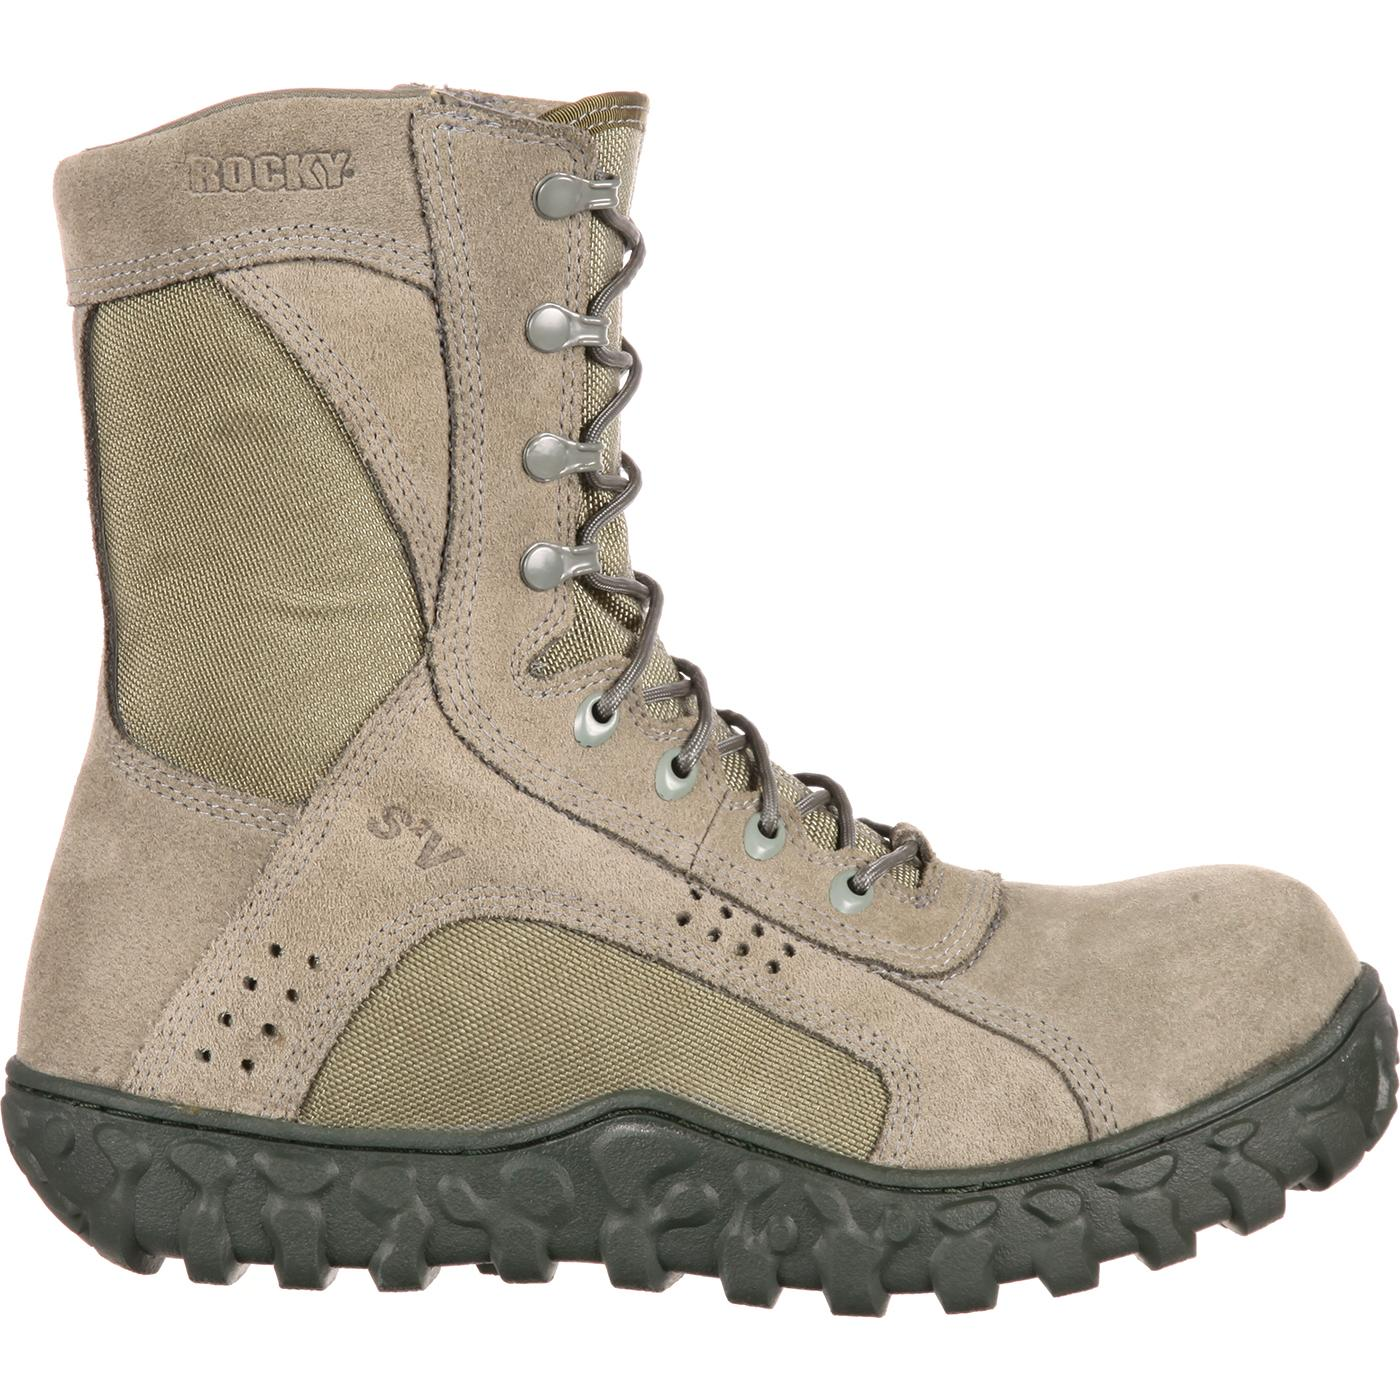 42b78ec50772 Rocky S2V Composite Toe Tactical Military Boot. Comfortable safety ...